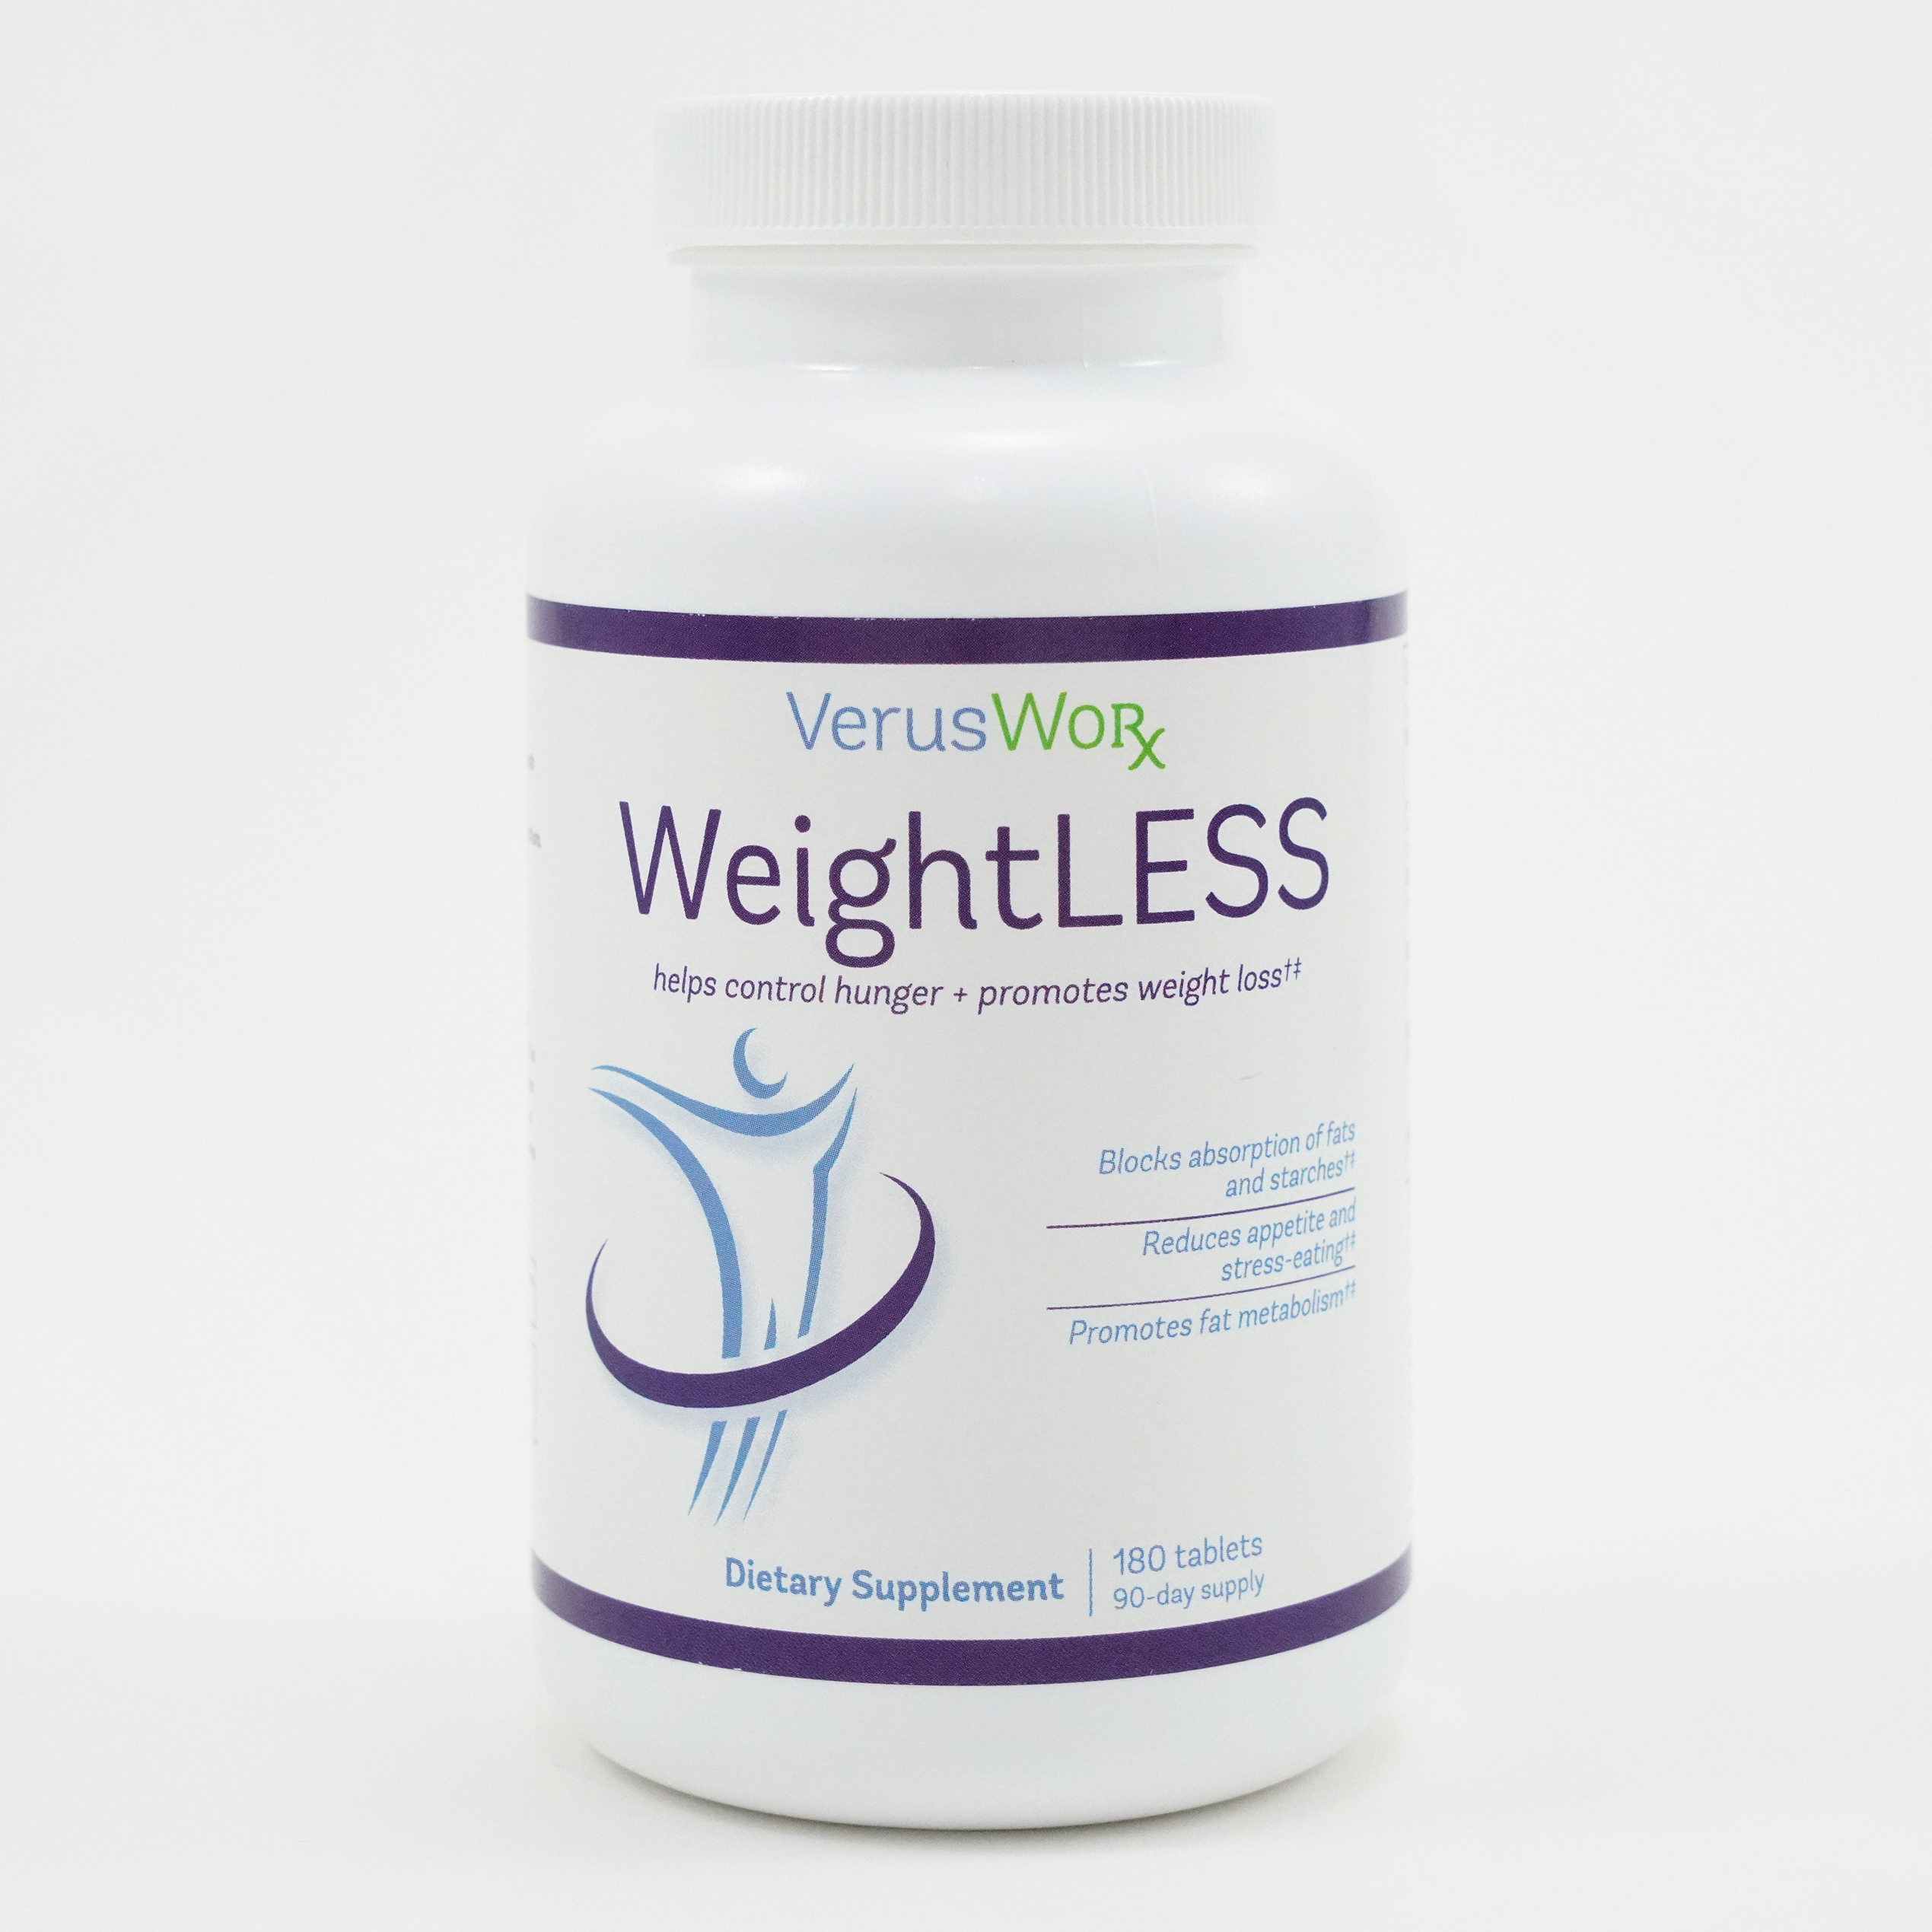 WeightLESS | helps control hunger + promotes weight loss